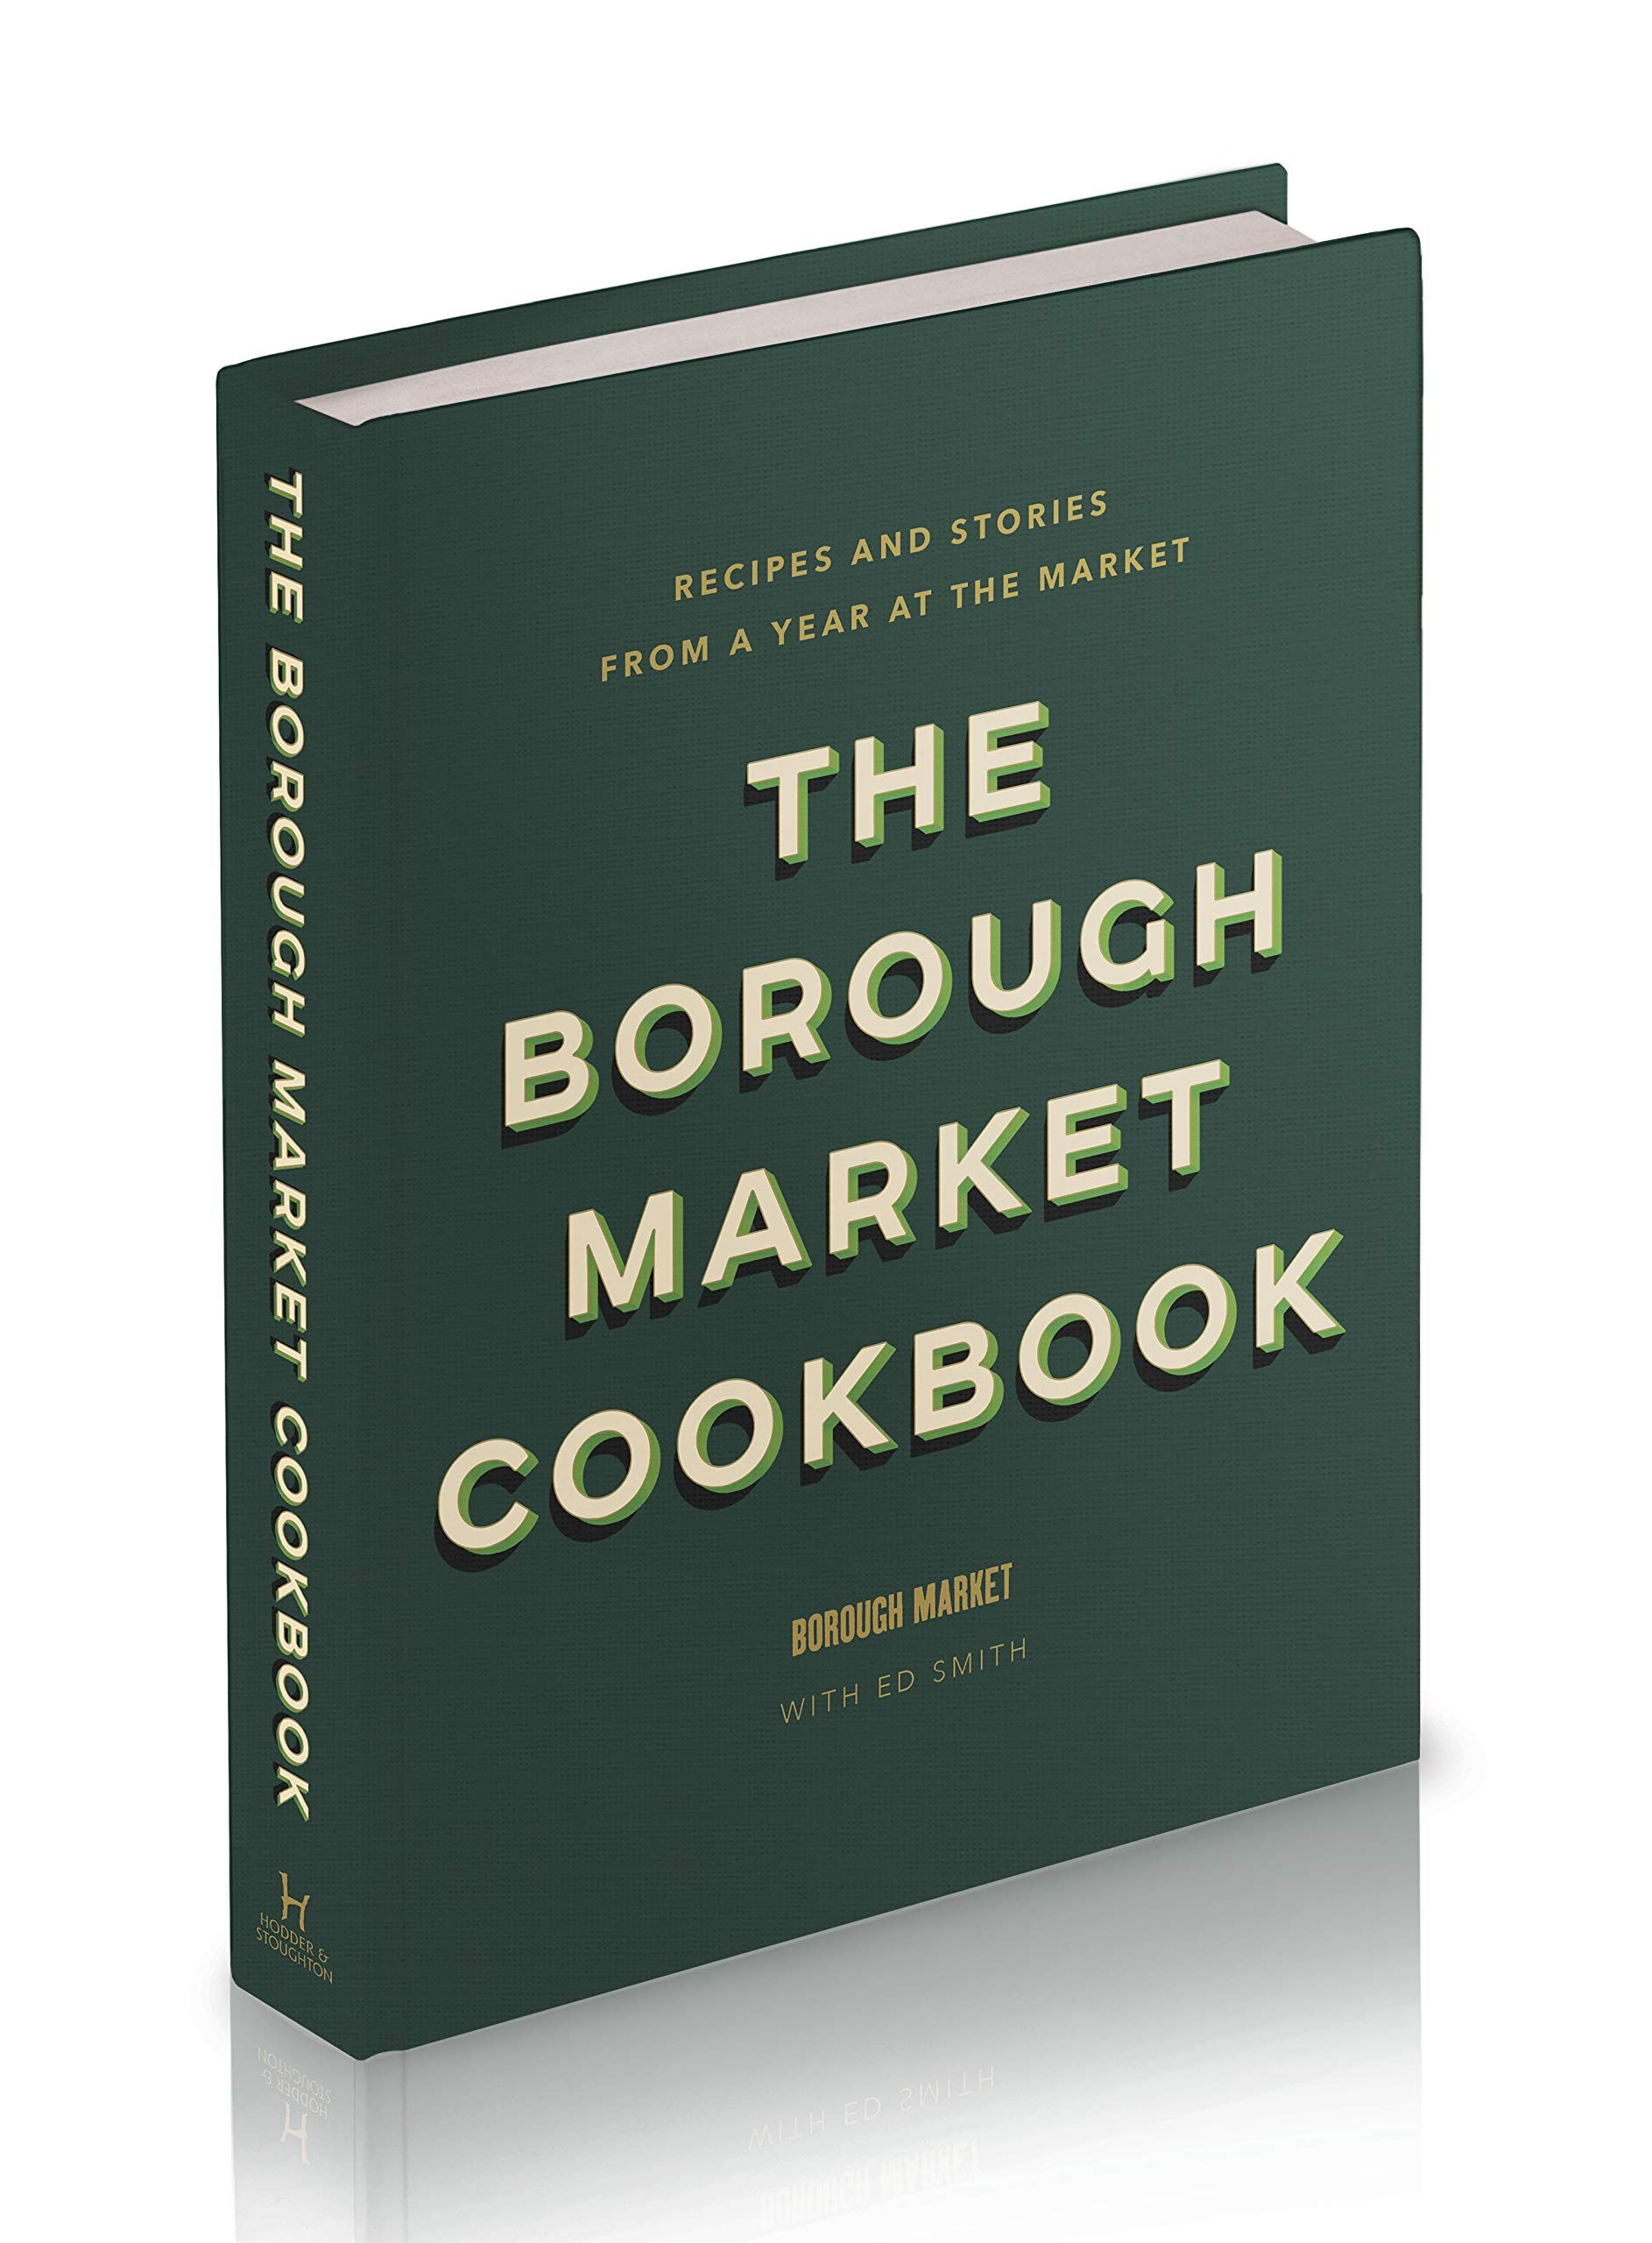 Lunchtime shopping spree: the Borough Market Cook Book